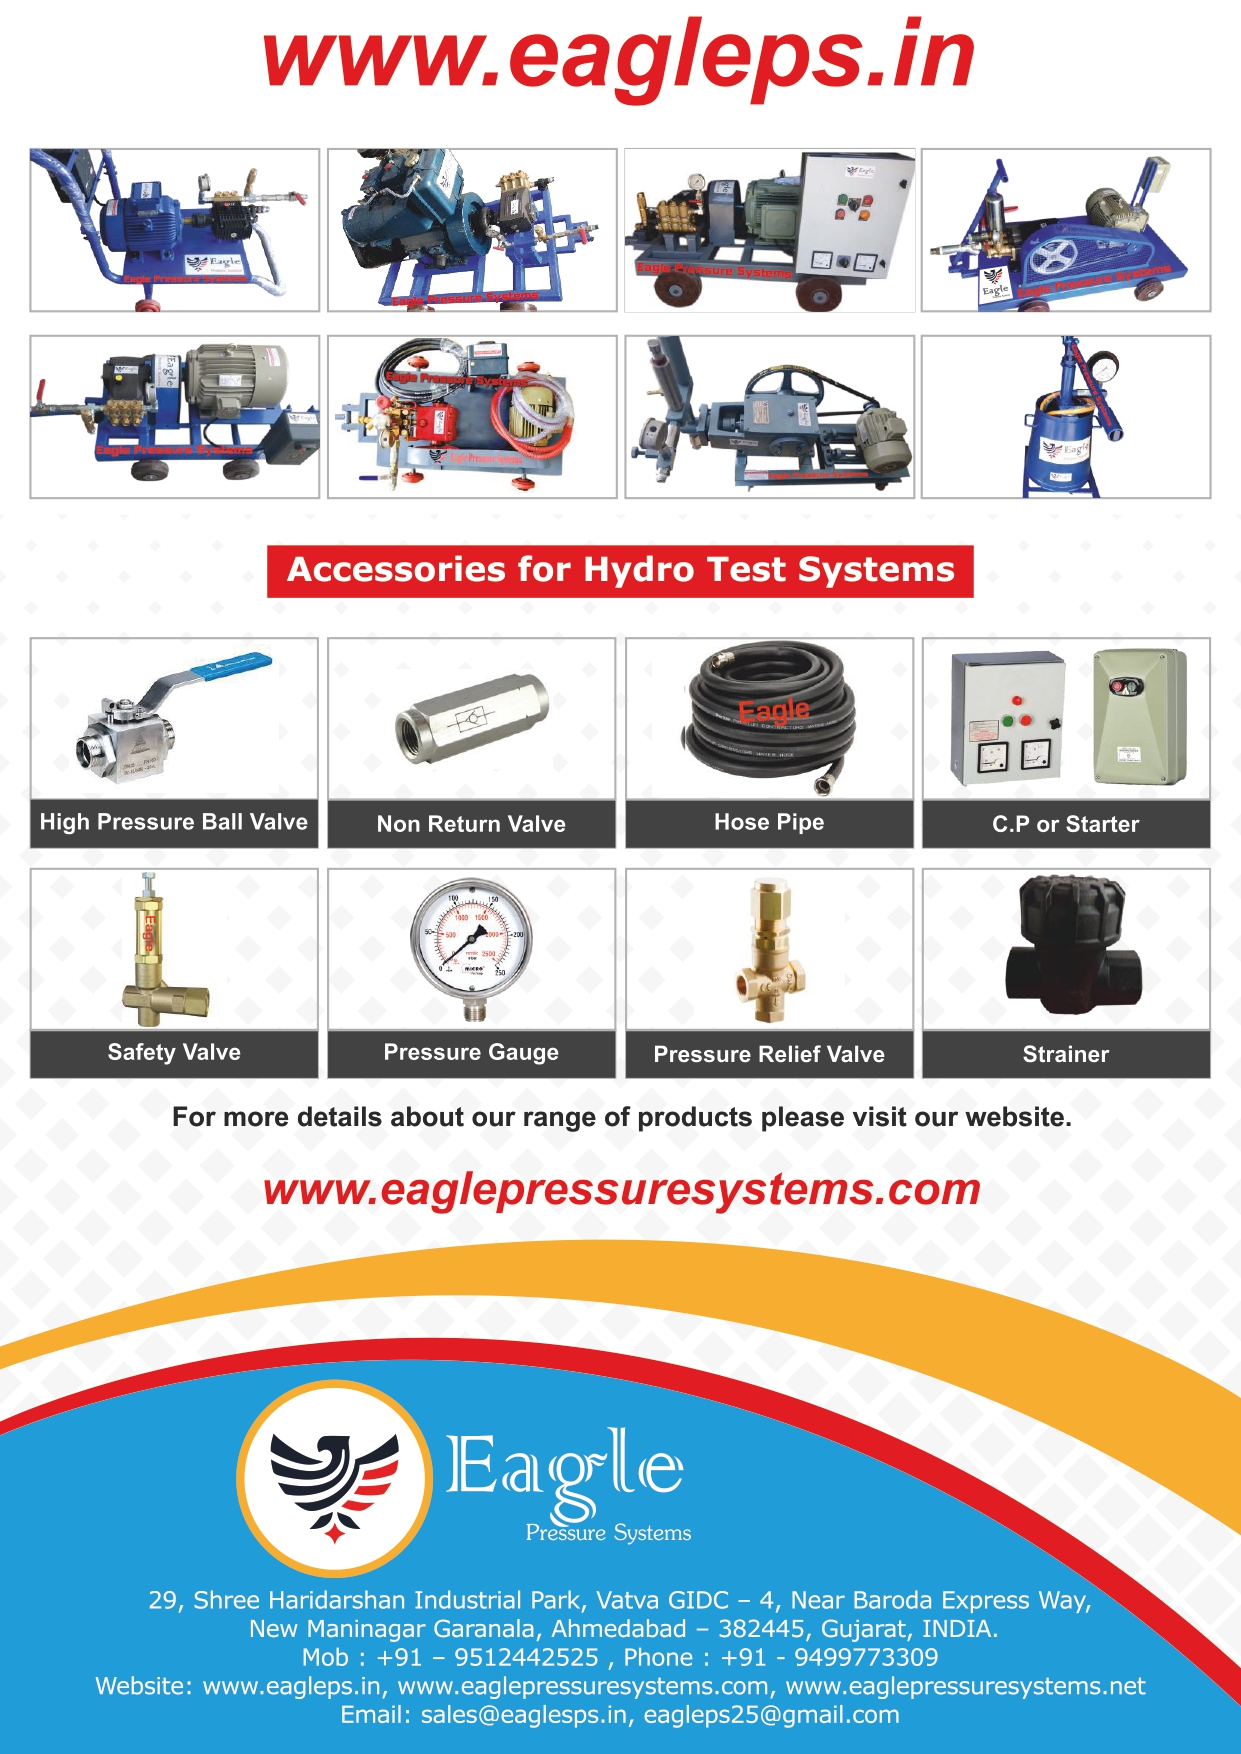 Eagle Pressure Systems in Ahmedabad, India